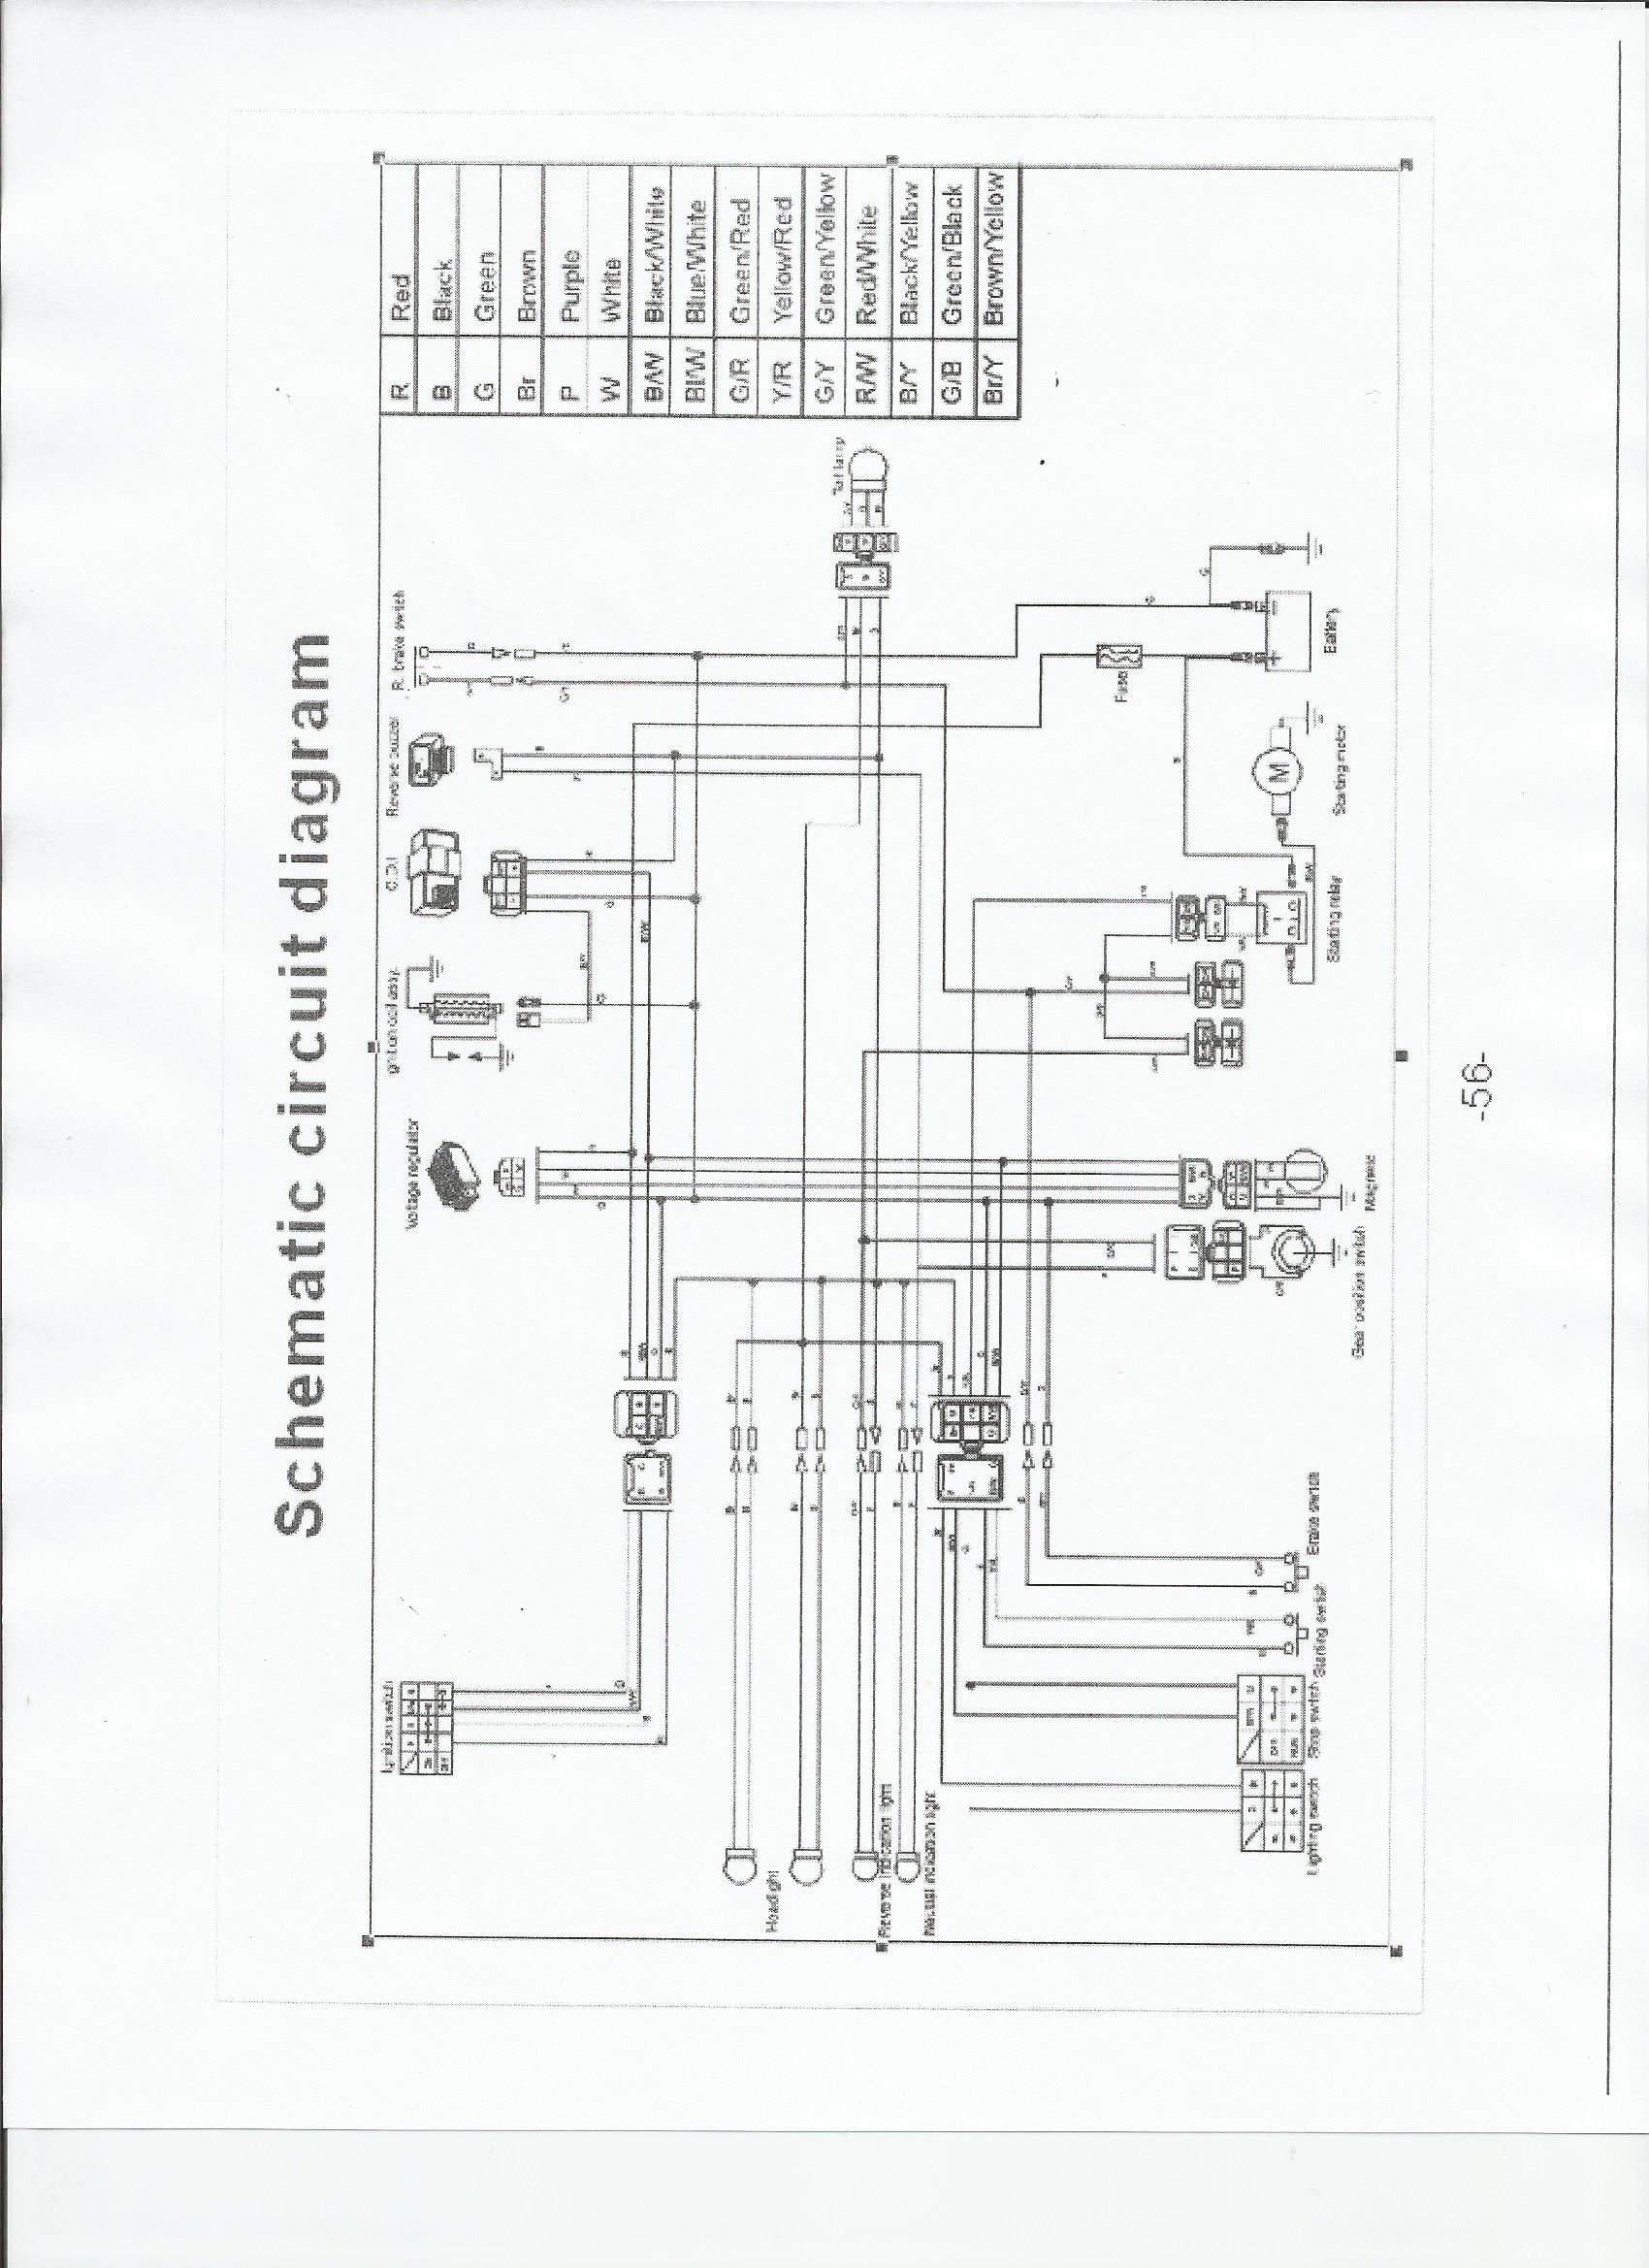 tao tao wiring schematic taotao mini and youth atv wiring schematic familygokarts support taotao atv wiring diagram at highcare.asia